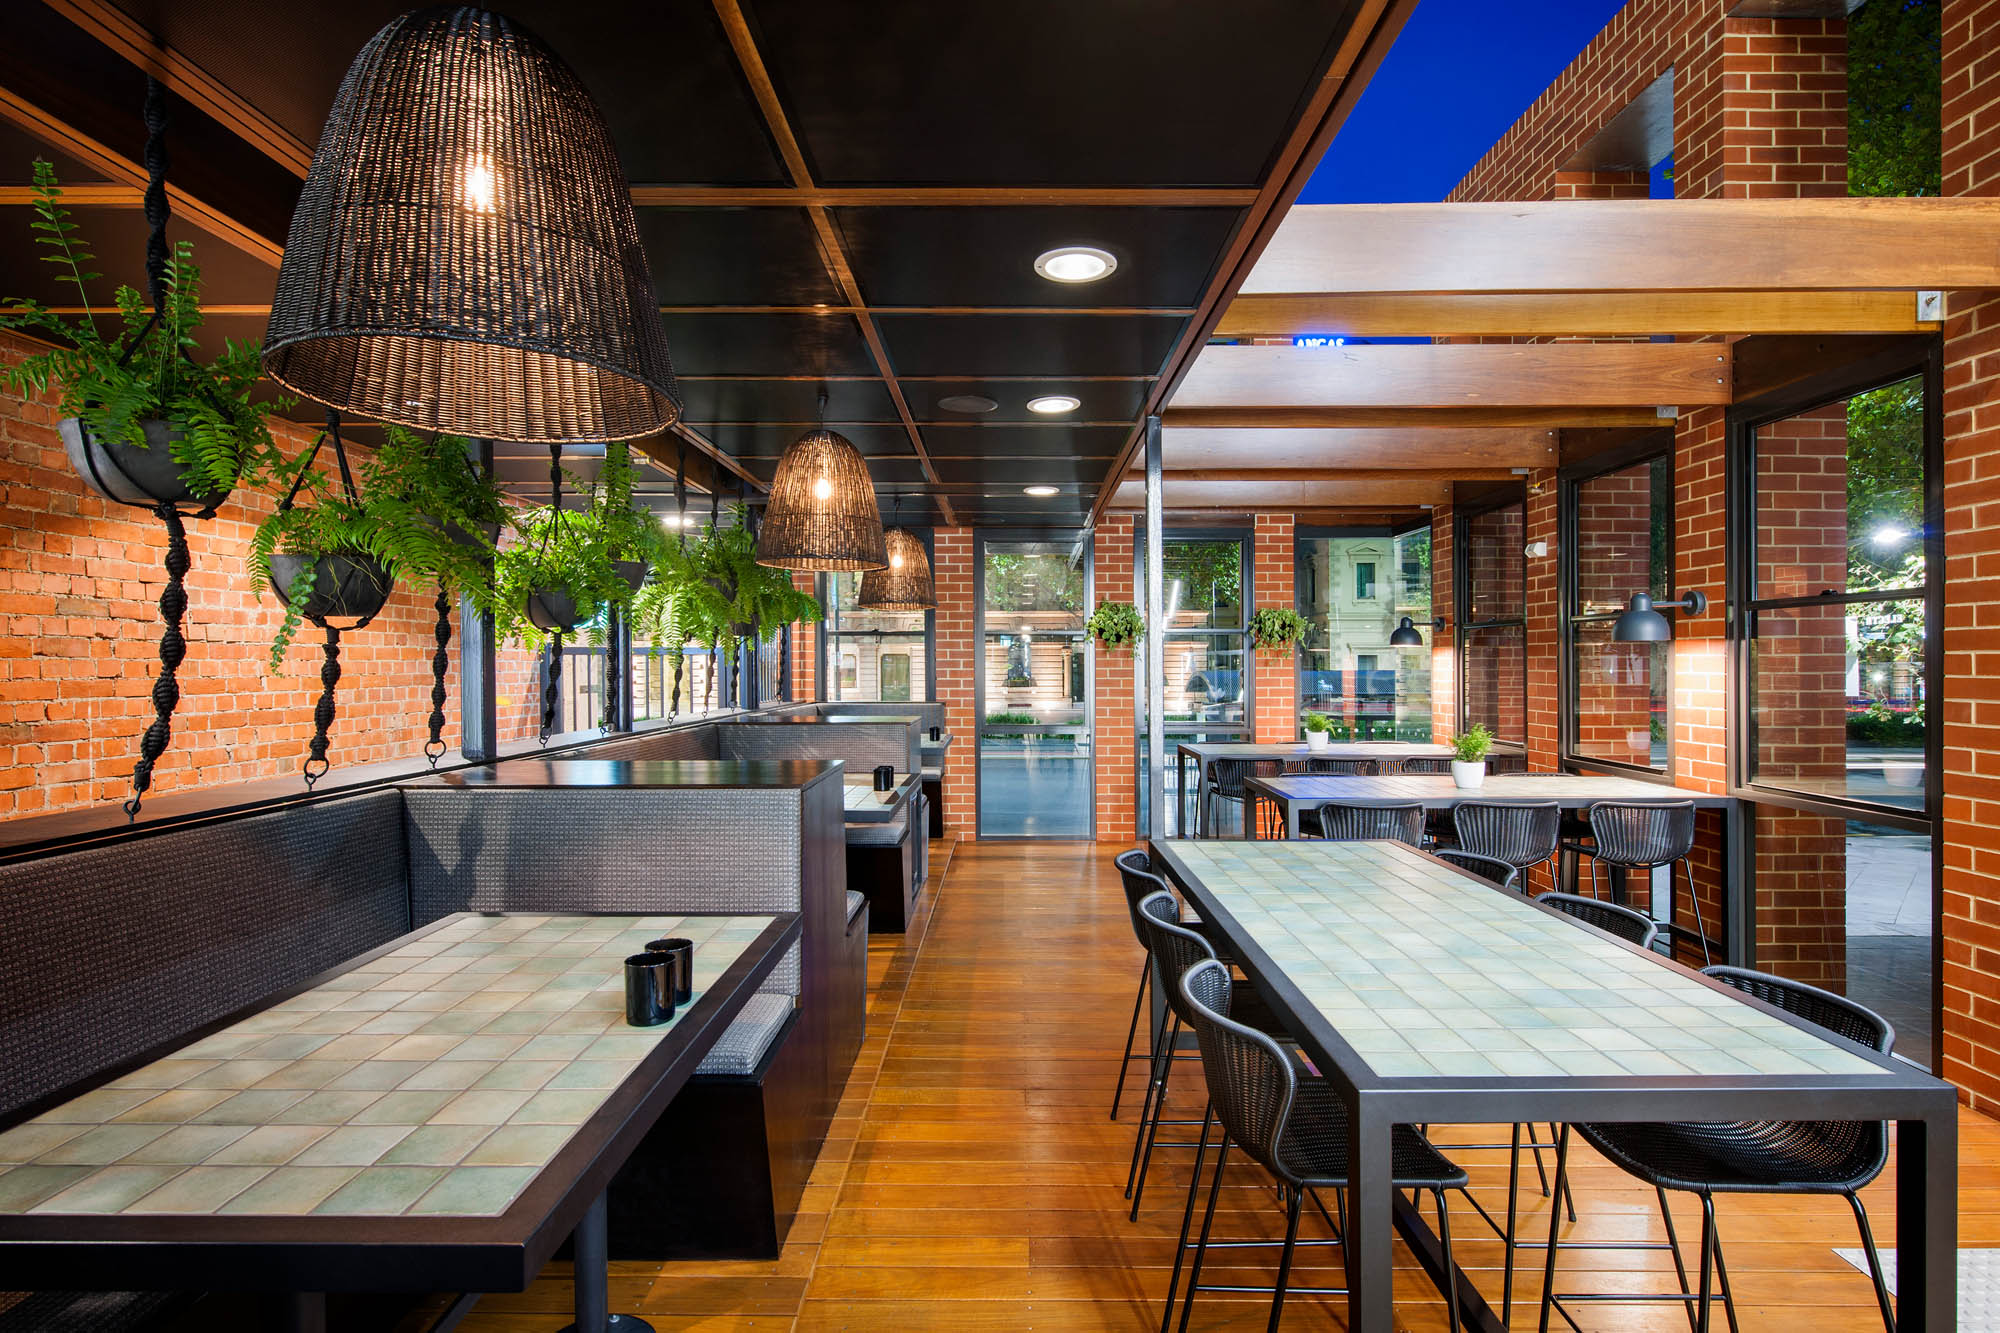 electra house adelaide heritage outdoor dining alfresco bar timber pendant lighting bricks